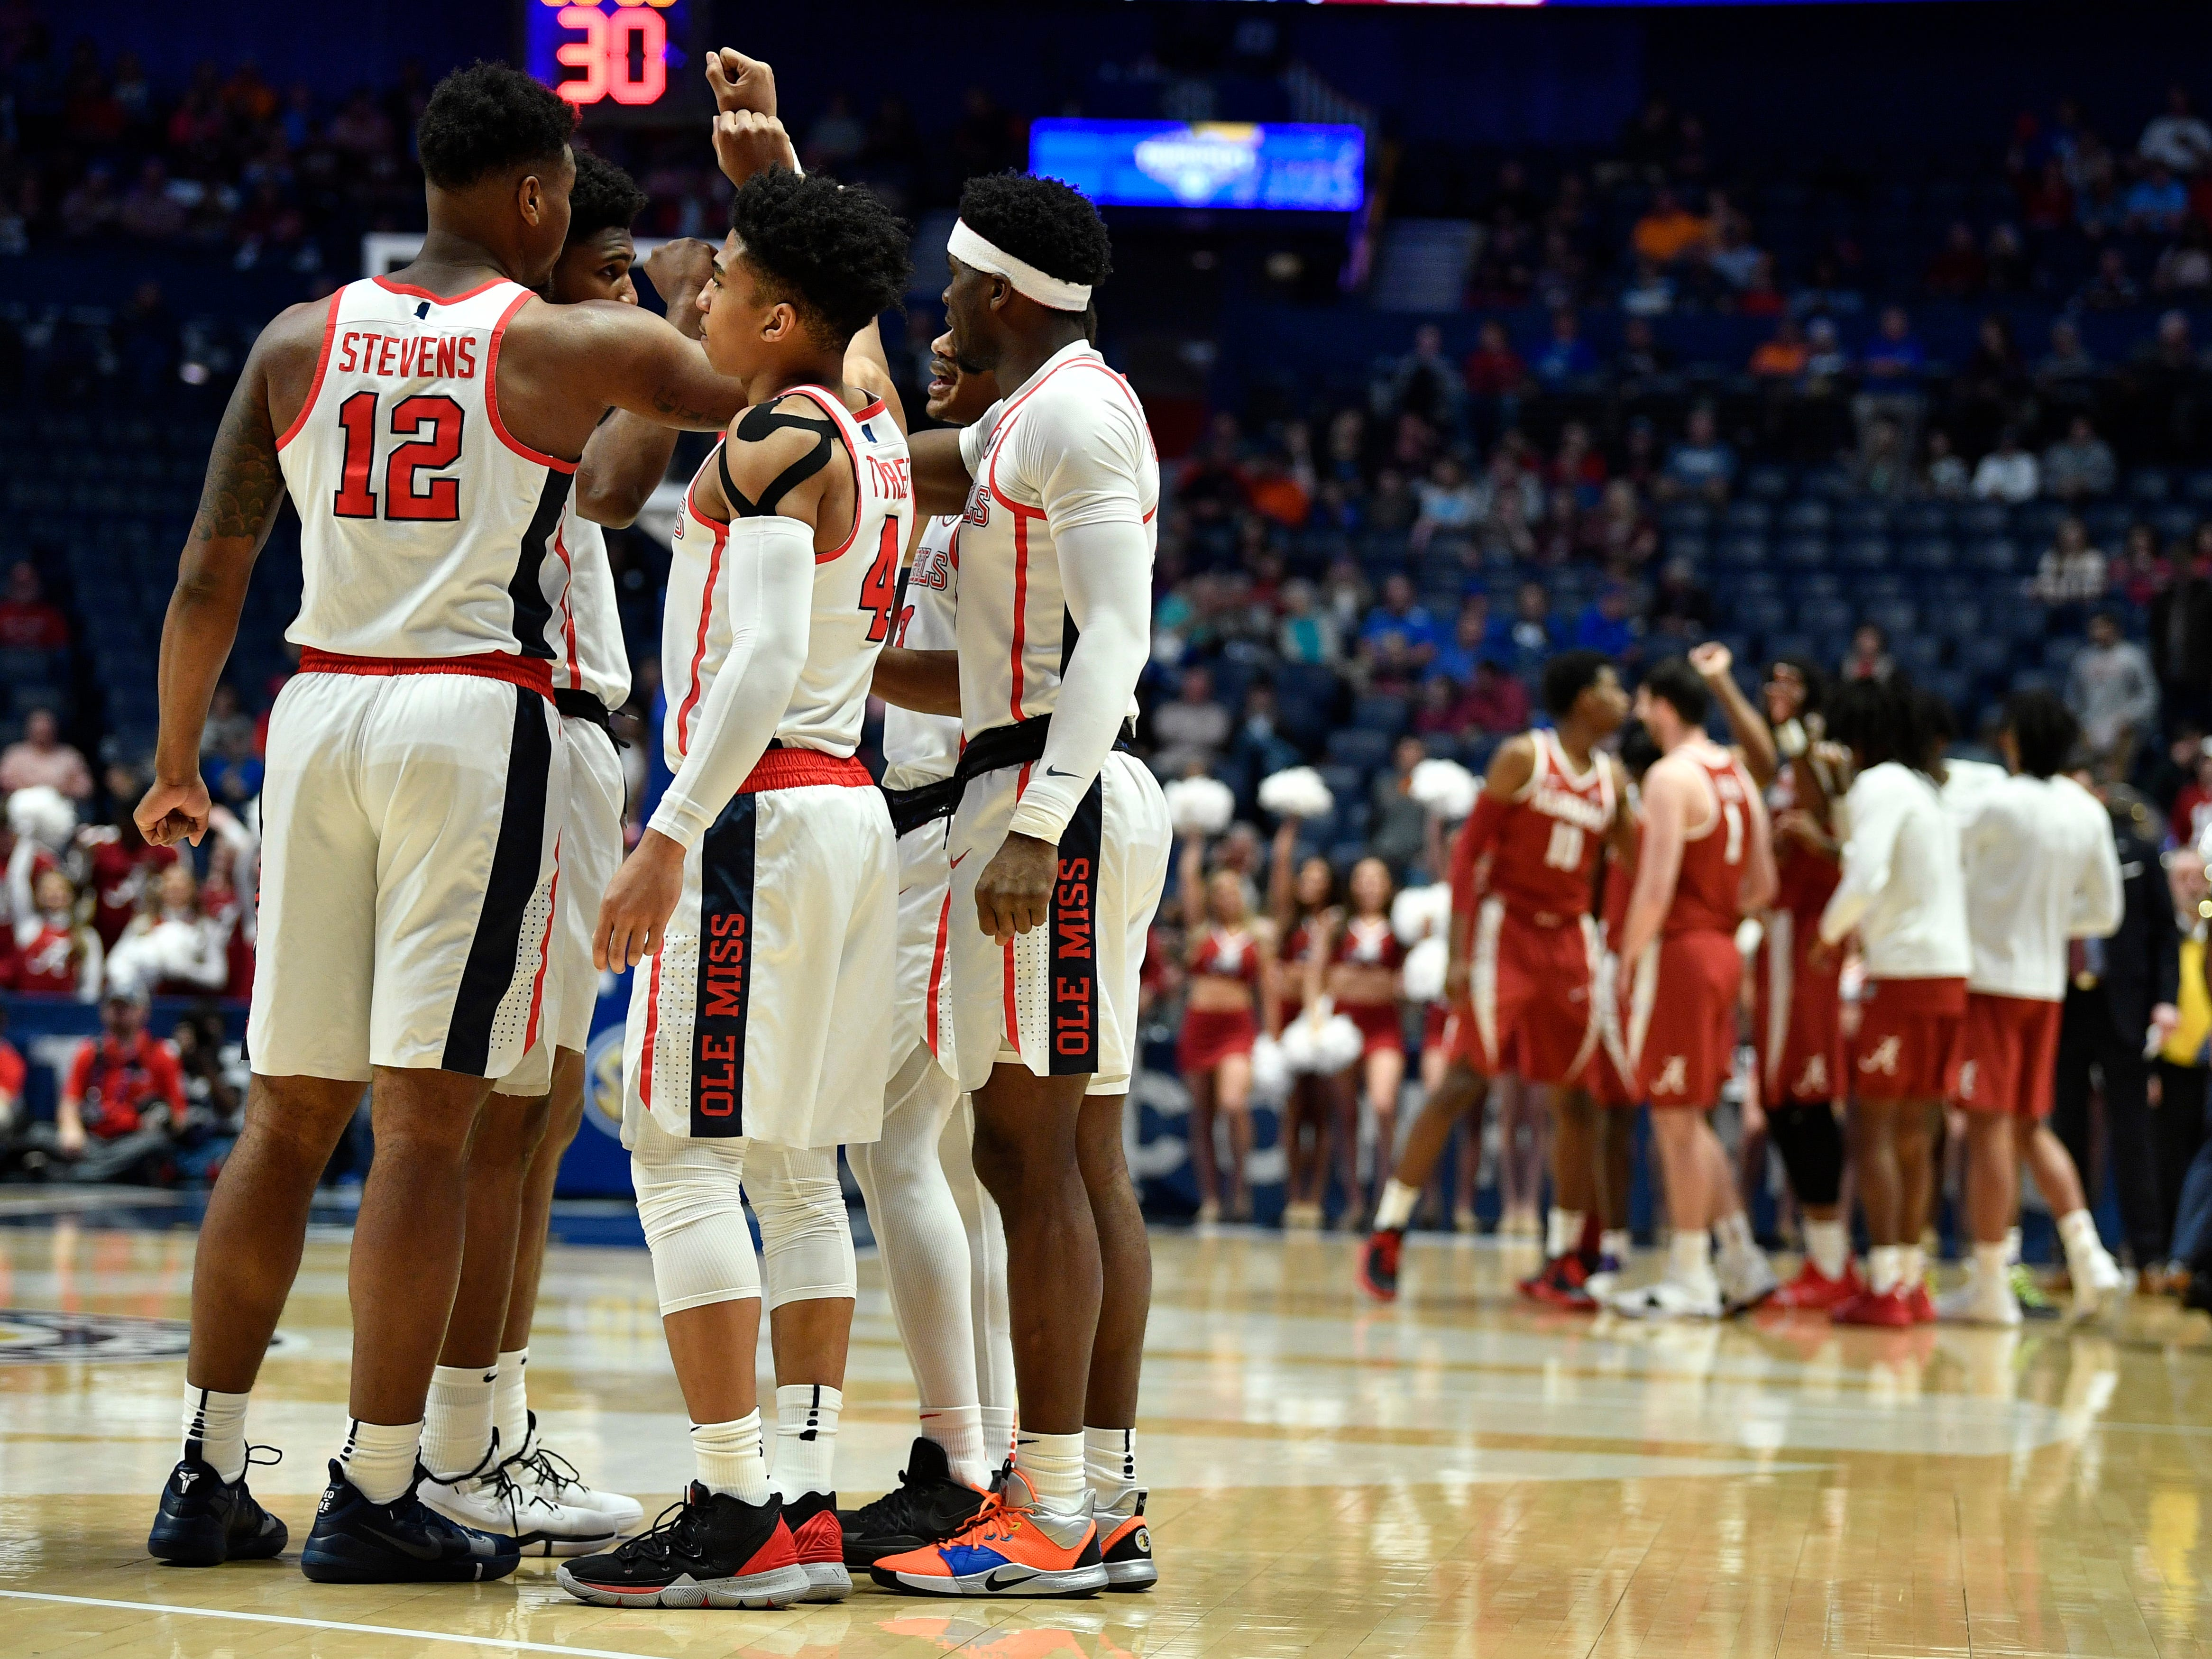 Ole Miss players huddle at the start of the SEC Men's Basketball Tournament game against Alabama at Bridgestone Arena in Nashville, Tenn., Thursday, March 14, 2019.